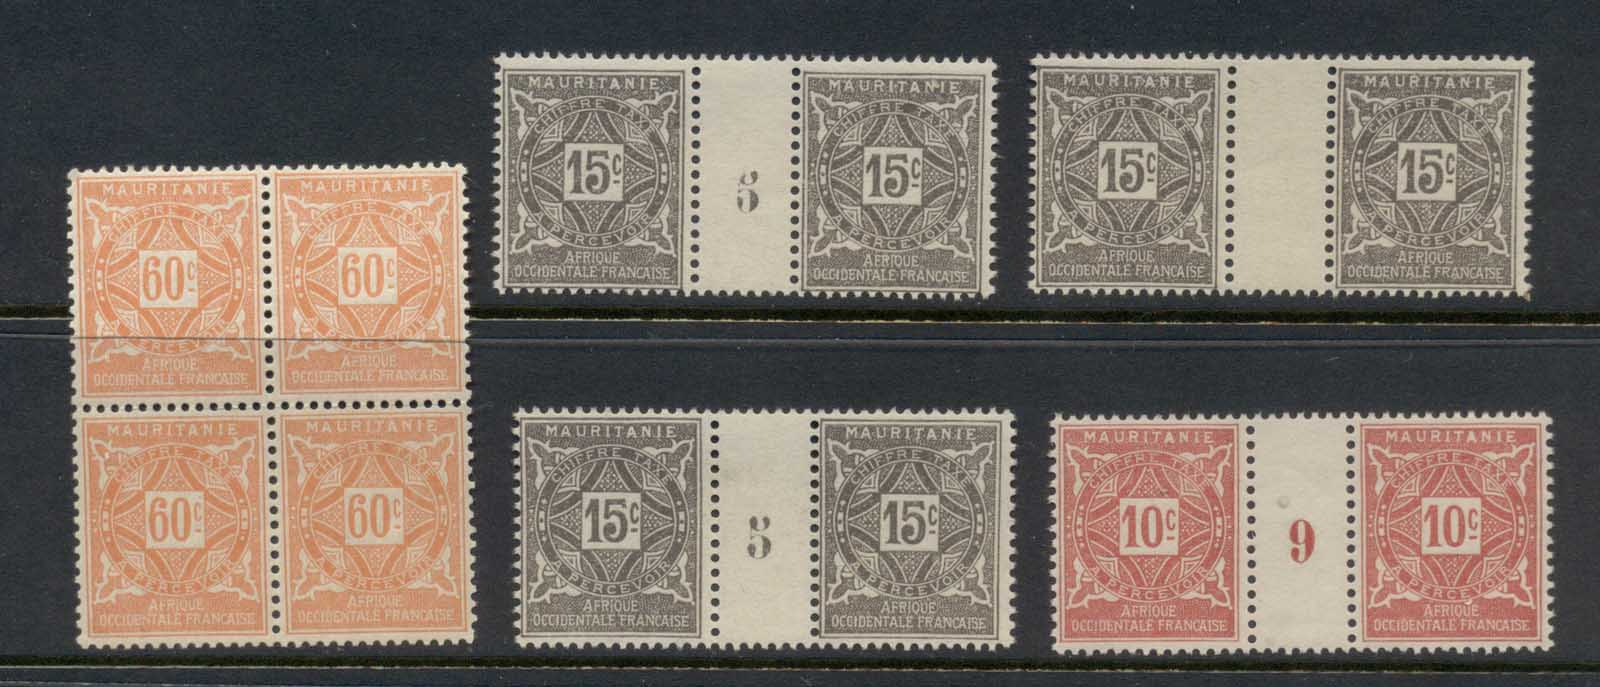 Mauritania 1914 Postage Dues Multiples Asst MLH/MUH